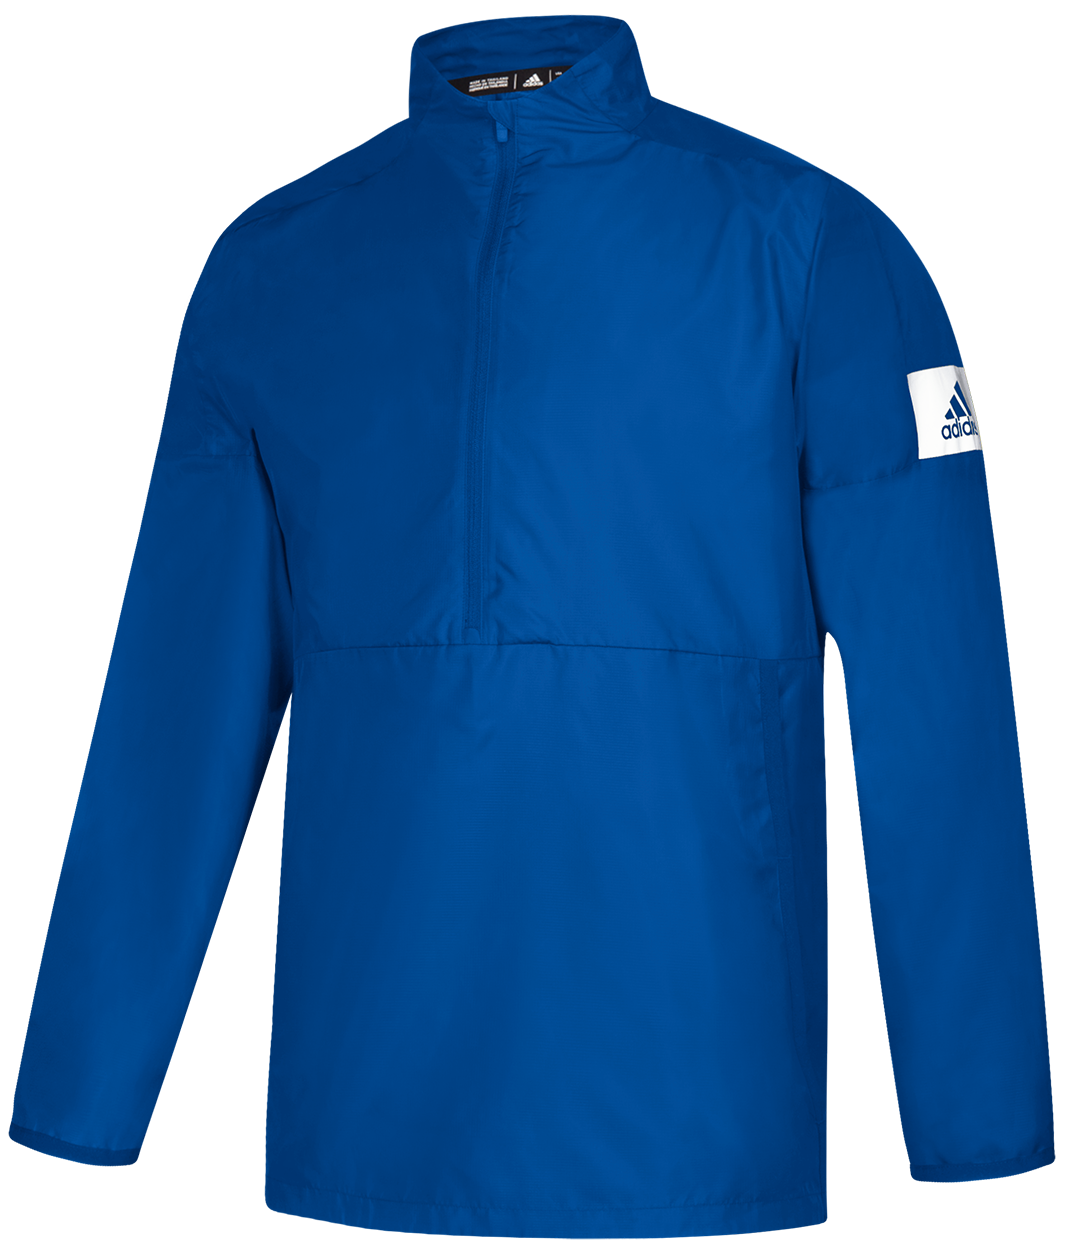 1 Pallet of adidas Game Mode Long-Sleeve 1/4-Zip Jackets Ext. Retail $36,470, Carroll, IA